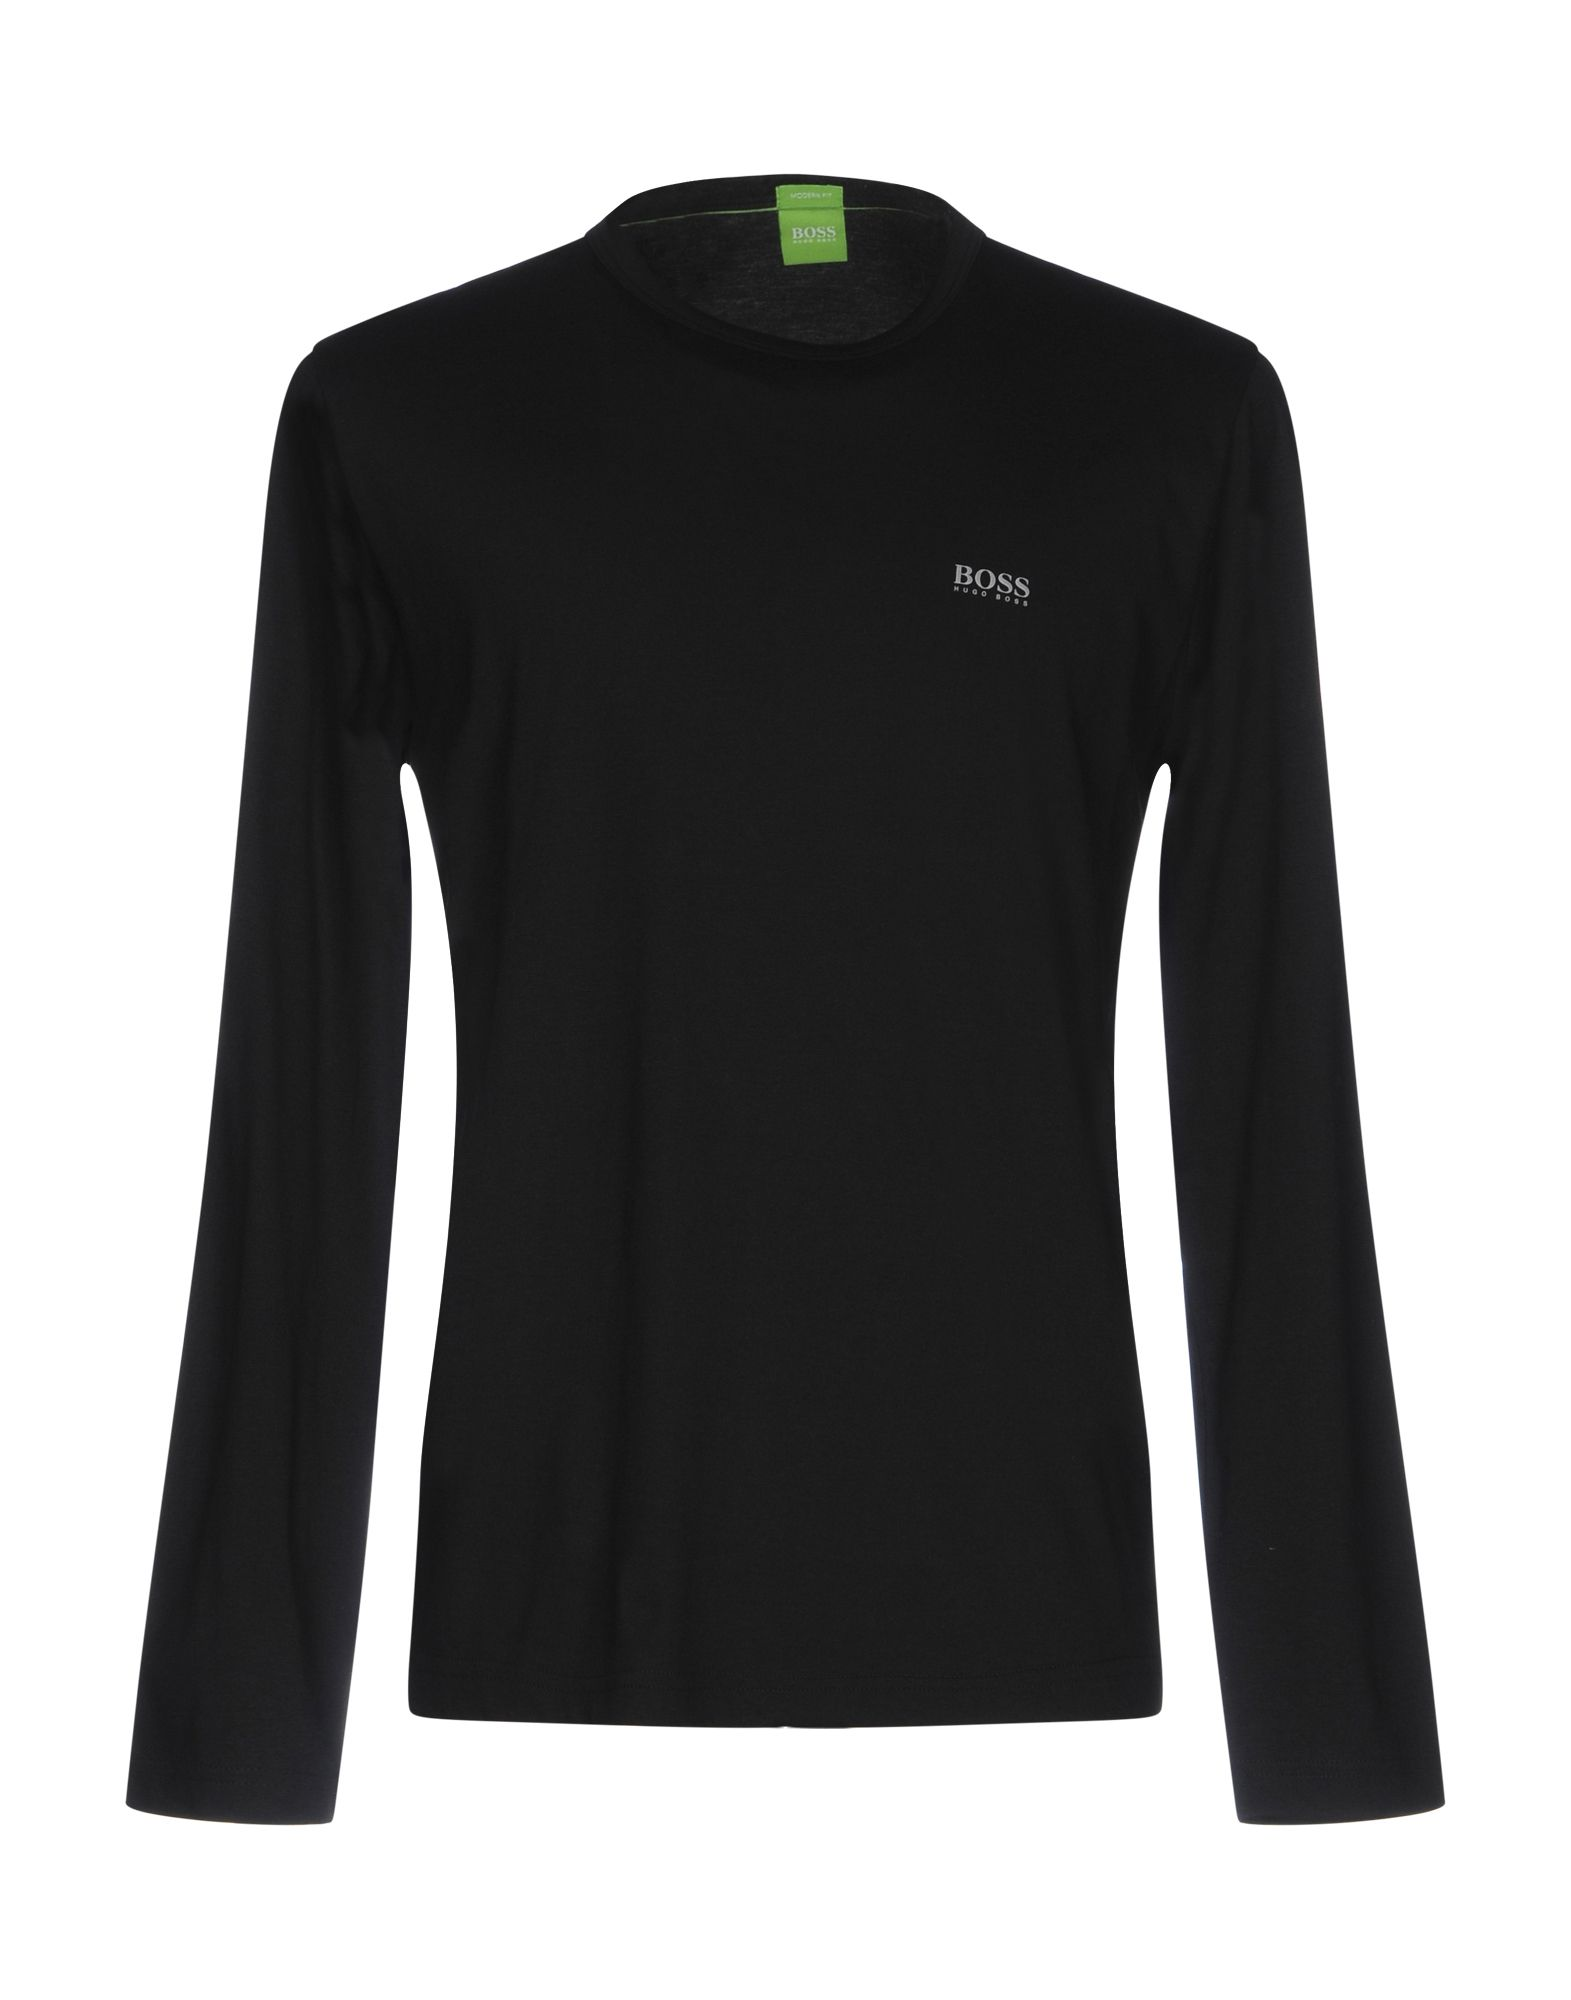 BOSS GREEN T-Shirt in Black